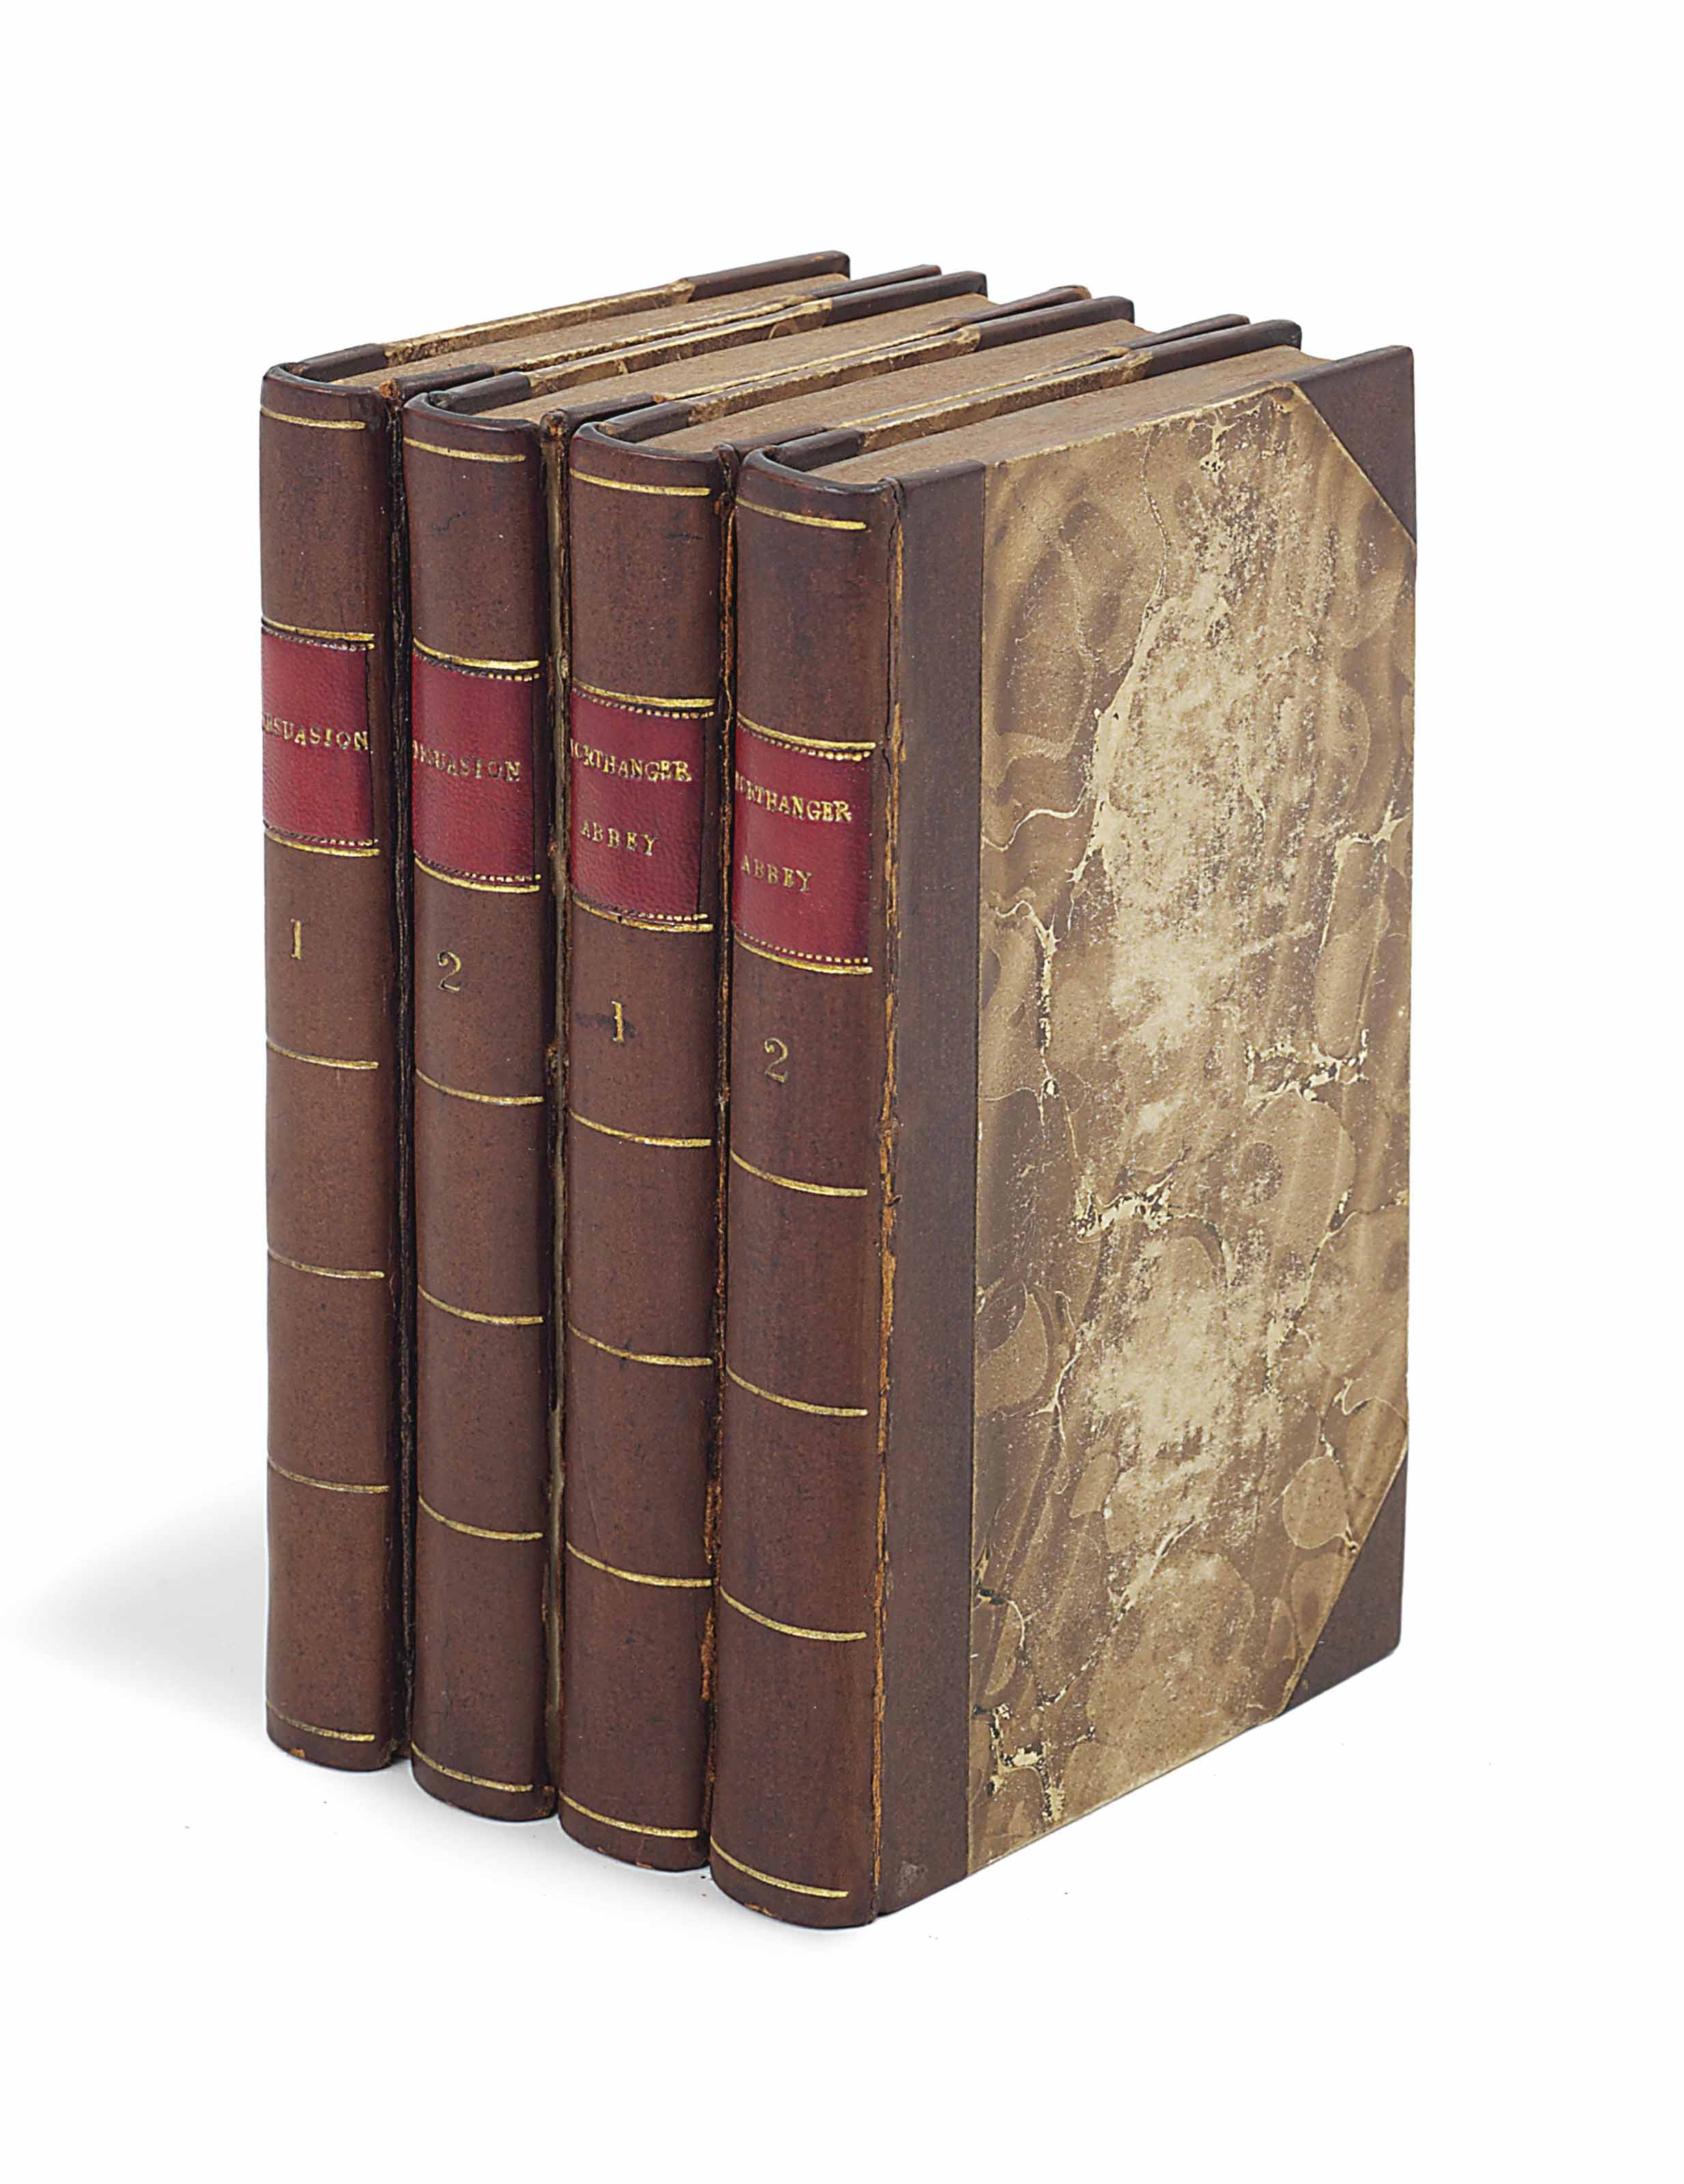 [AUSTEN, Jane (1775-1817).] Northanger Abbey: and Persuasion... With a Biographical Notice of the Author [by Henry Austen]. London: C. Rowarth [vols I-II], and T. Davison [vols III- IV] for John Murray, 1818 [but ca. 20 December 1817]. 4 volumes, 12° (169 x 100mm). Half-titles. (Some occasional light browning and spotting, without final blanks P7-8 in vol. IV as often.) Contemporary half calf, leather gilt spine labels, speckled edges (front cover of vol. I nearly detached, front joints cracked and restored in vol. III, extremities lightly rubbed). Provenance: Maria Cipriani (ownership inscription).